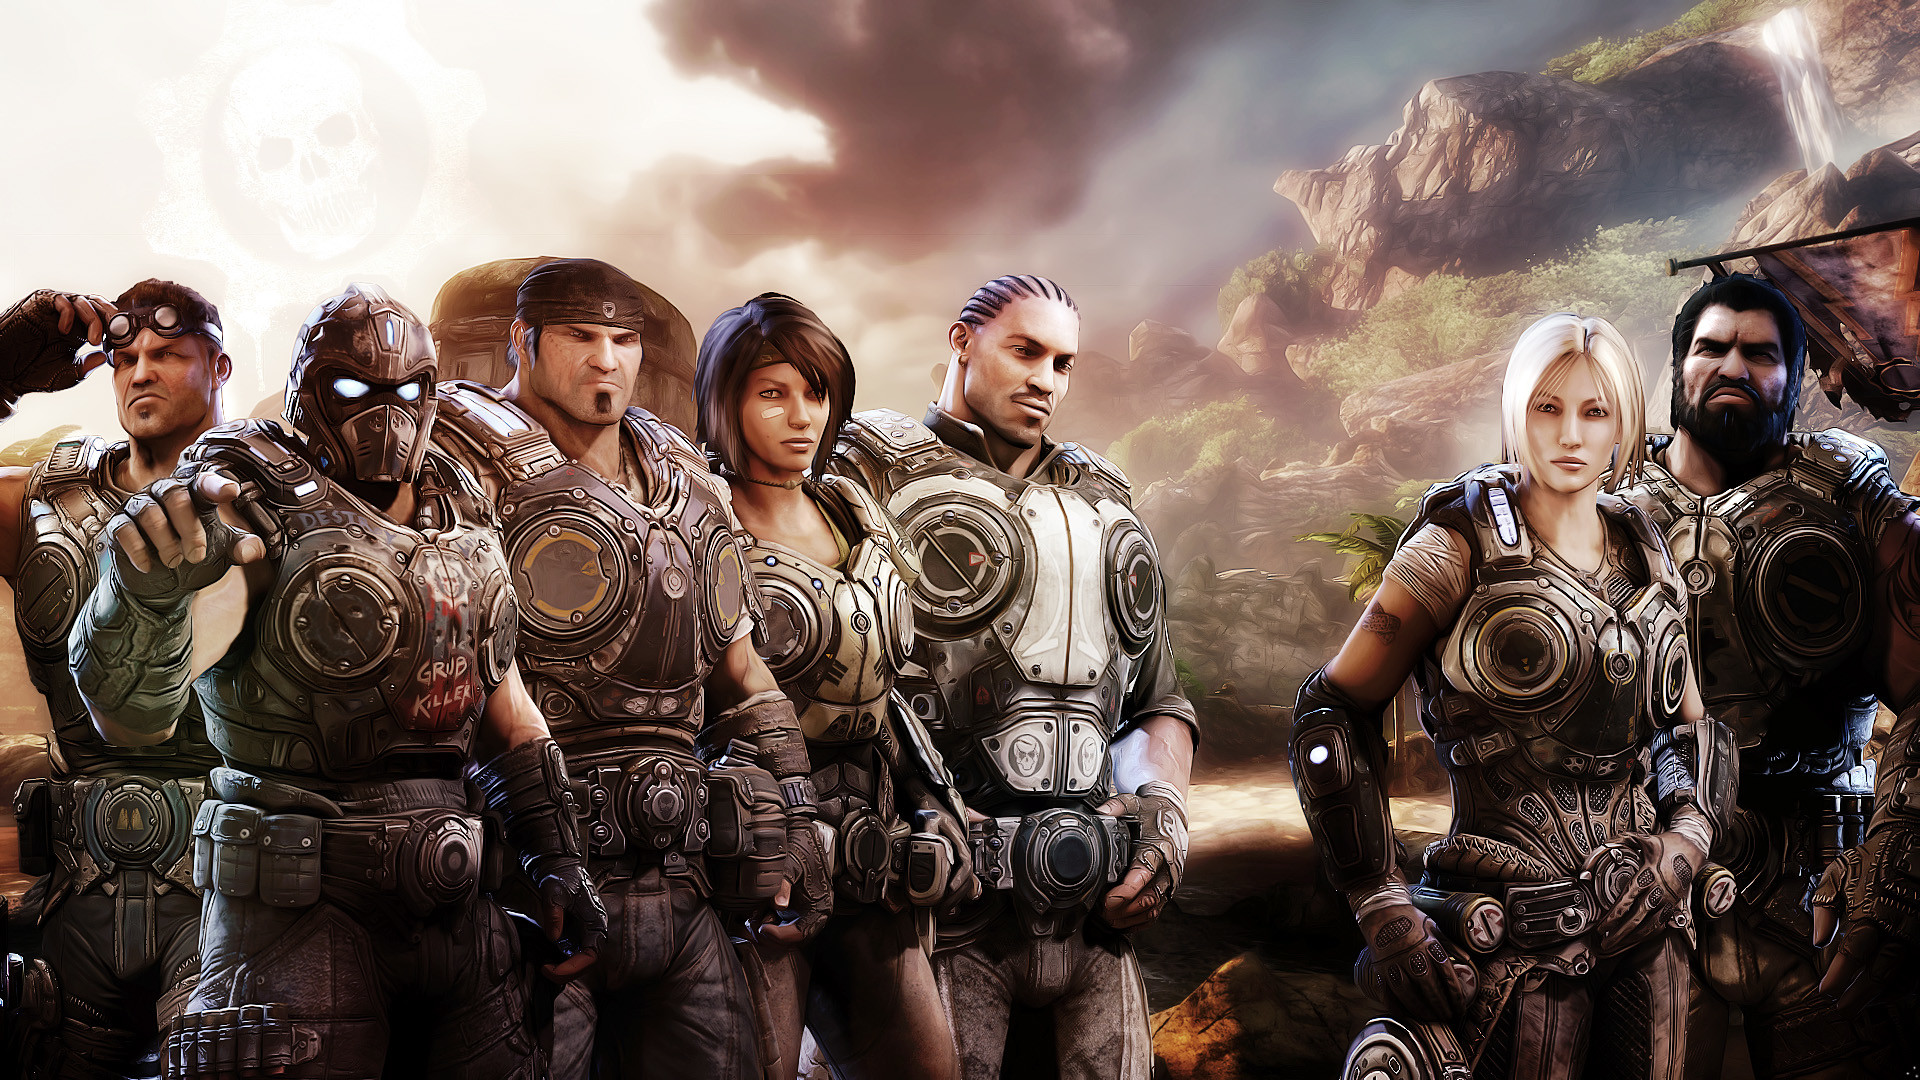 1920x1080 Full HD p Gears of war Wallpapers HD Desktop Backgrounds | HD Wallpapers |  Pinterest | Wallpaper